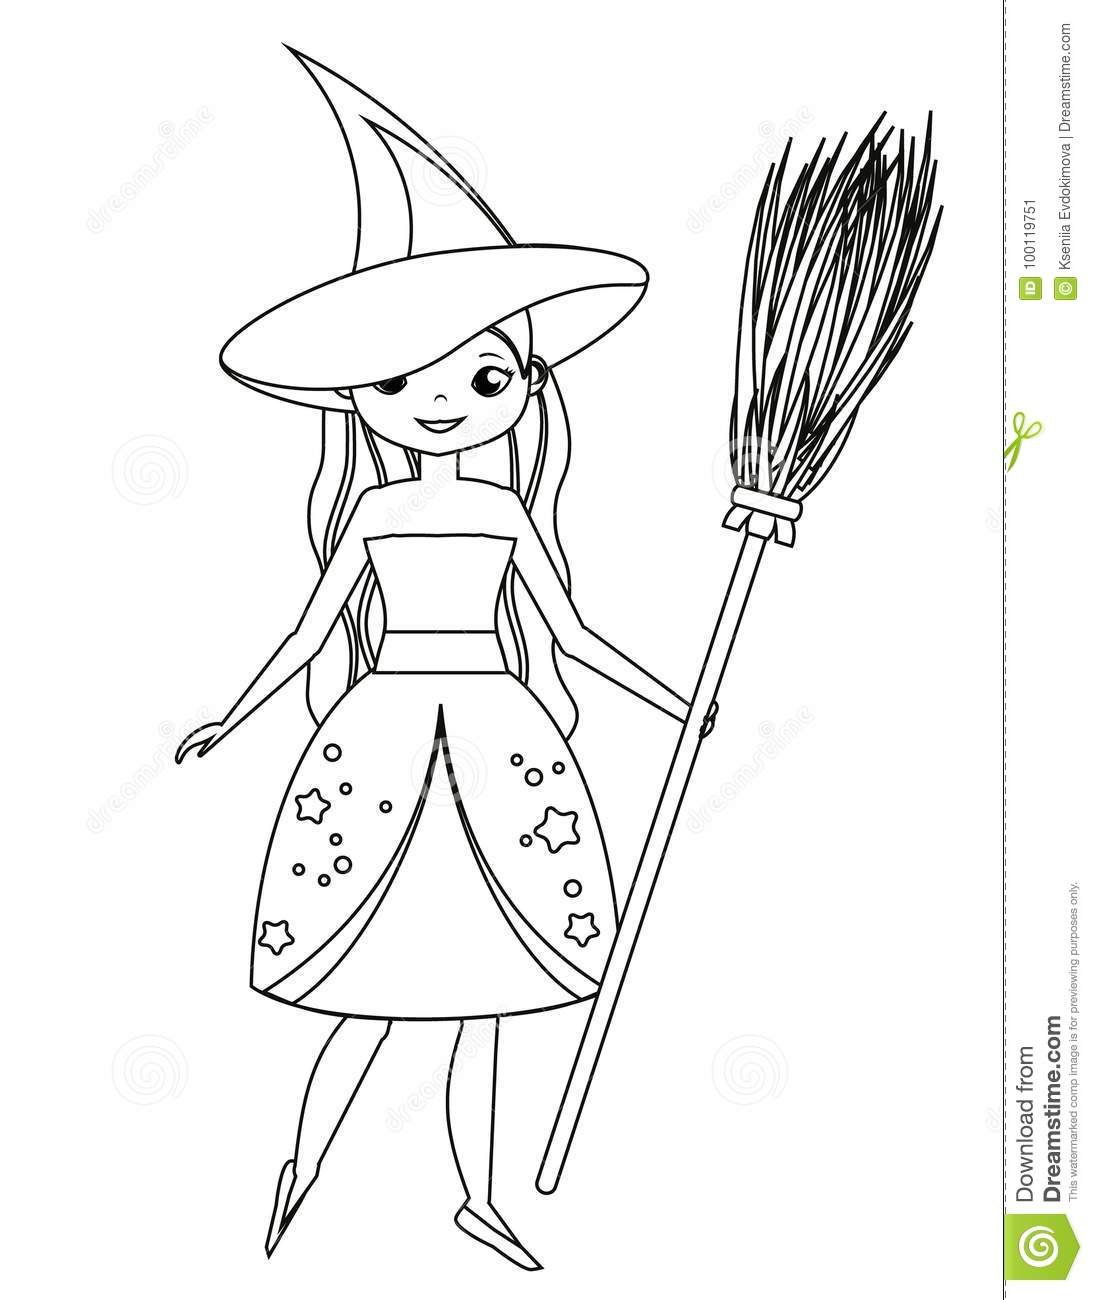 image relating to Girl Printable referred to as Coloring Website page For Youngsters. Lovely Witch Trying to keep Broom. Female